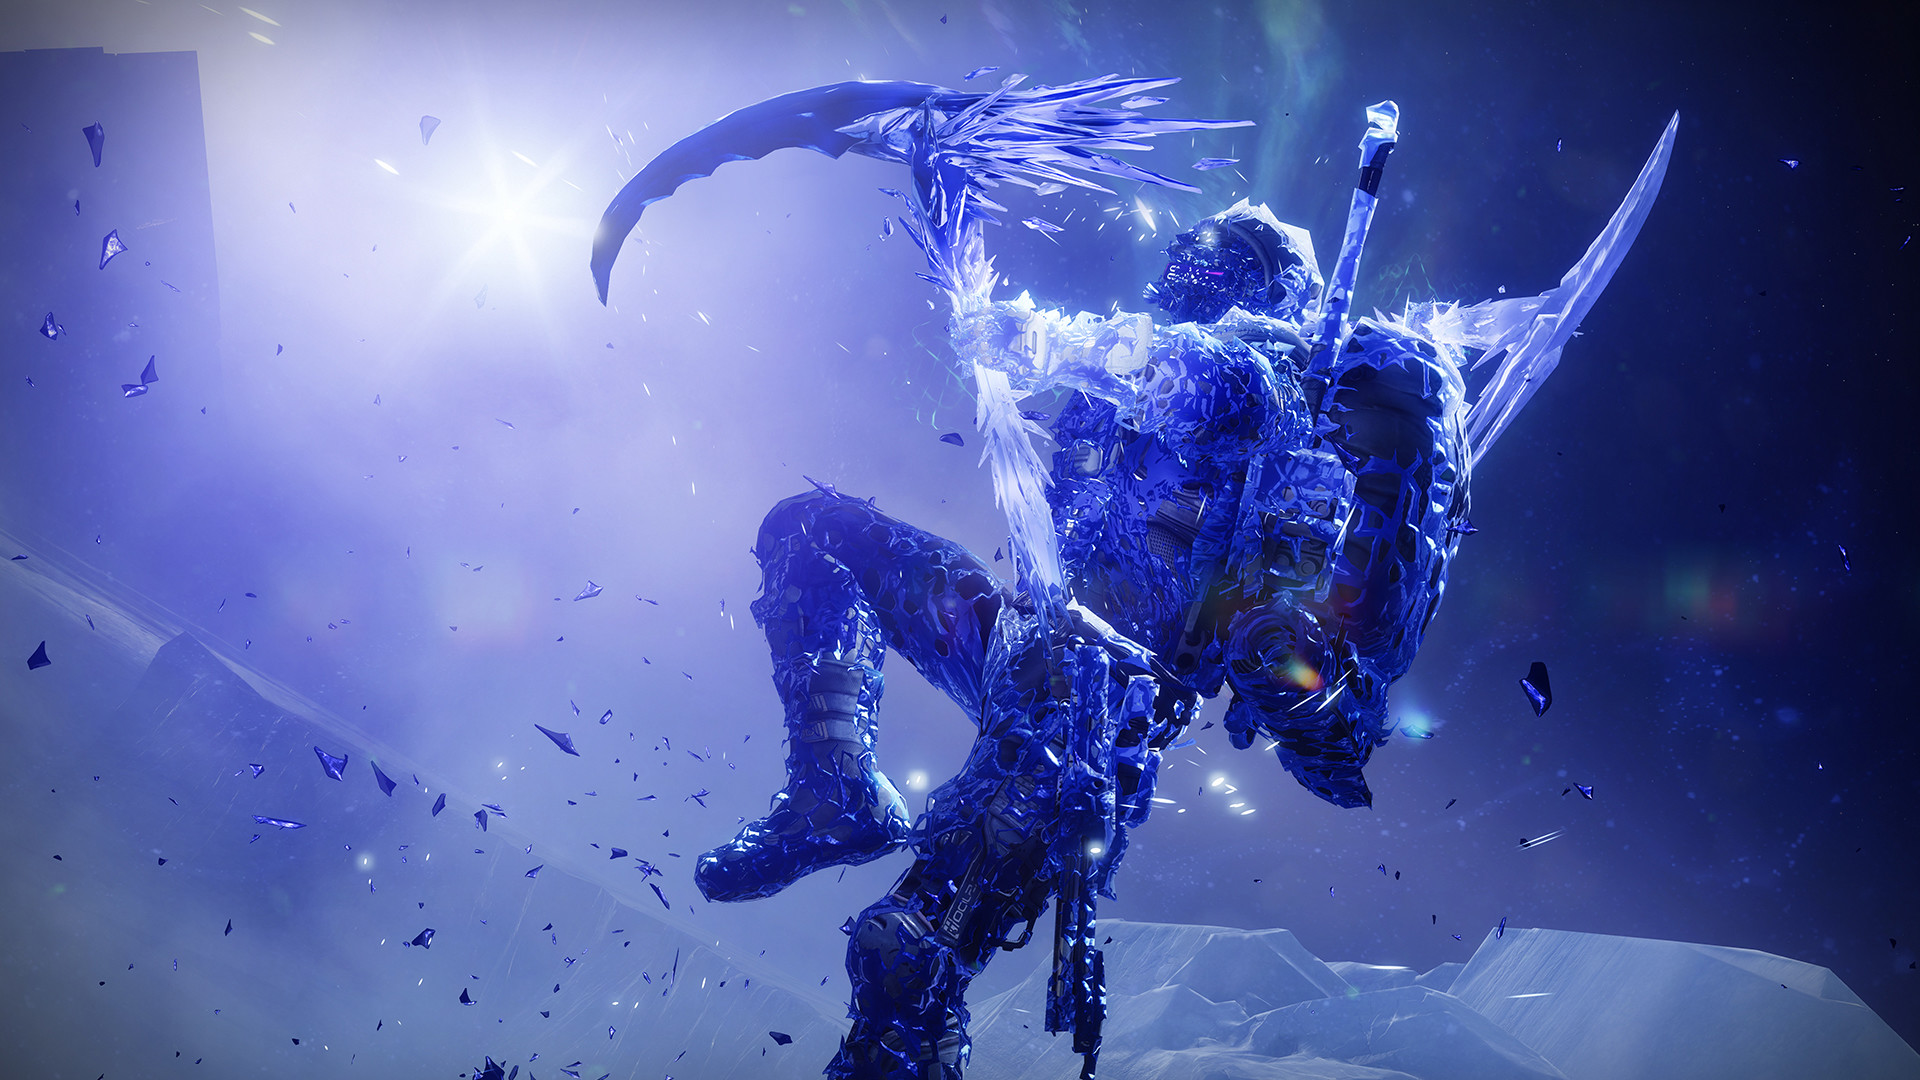 Bungie says they accidentally enabled a cross-play 'sneak peek' for Destiny 2, shutting it down this week